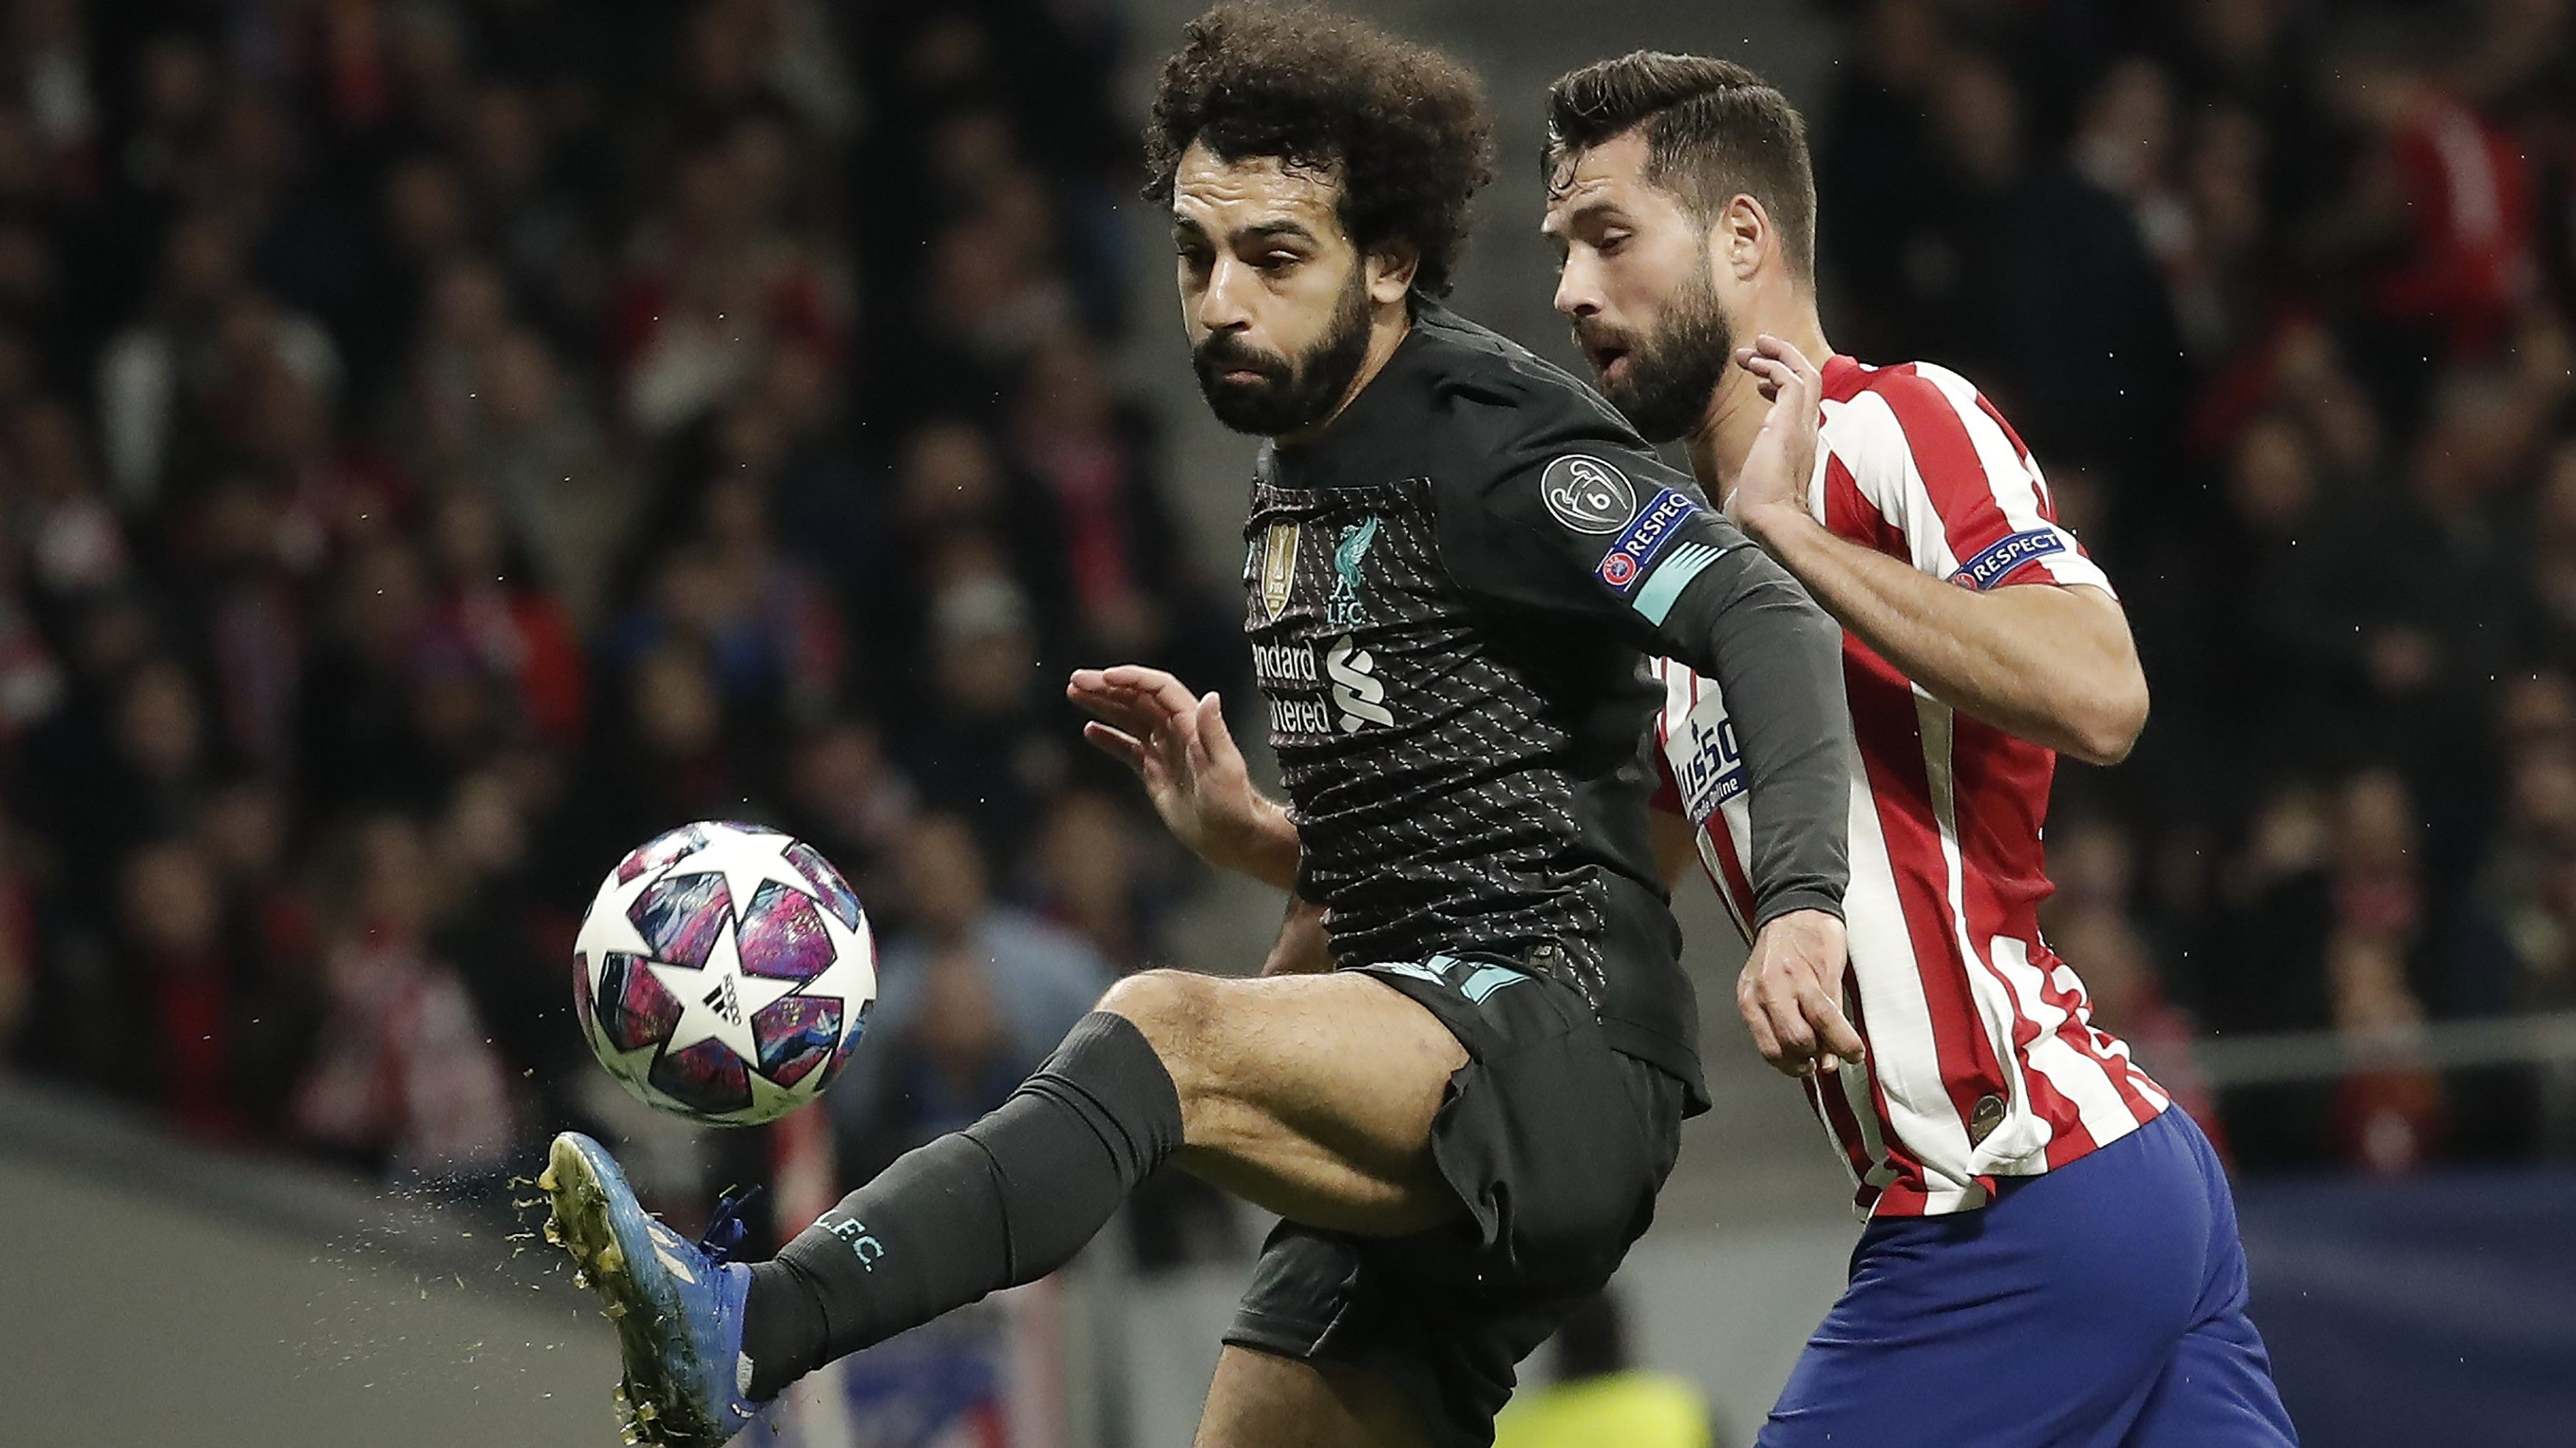 Champions League live stream how to watch every 2019/20